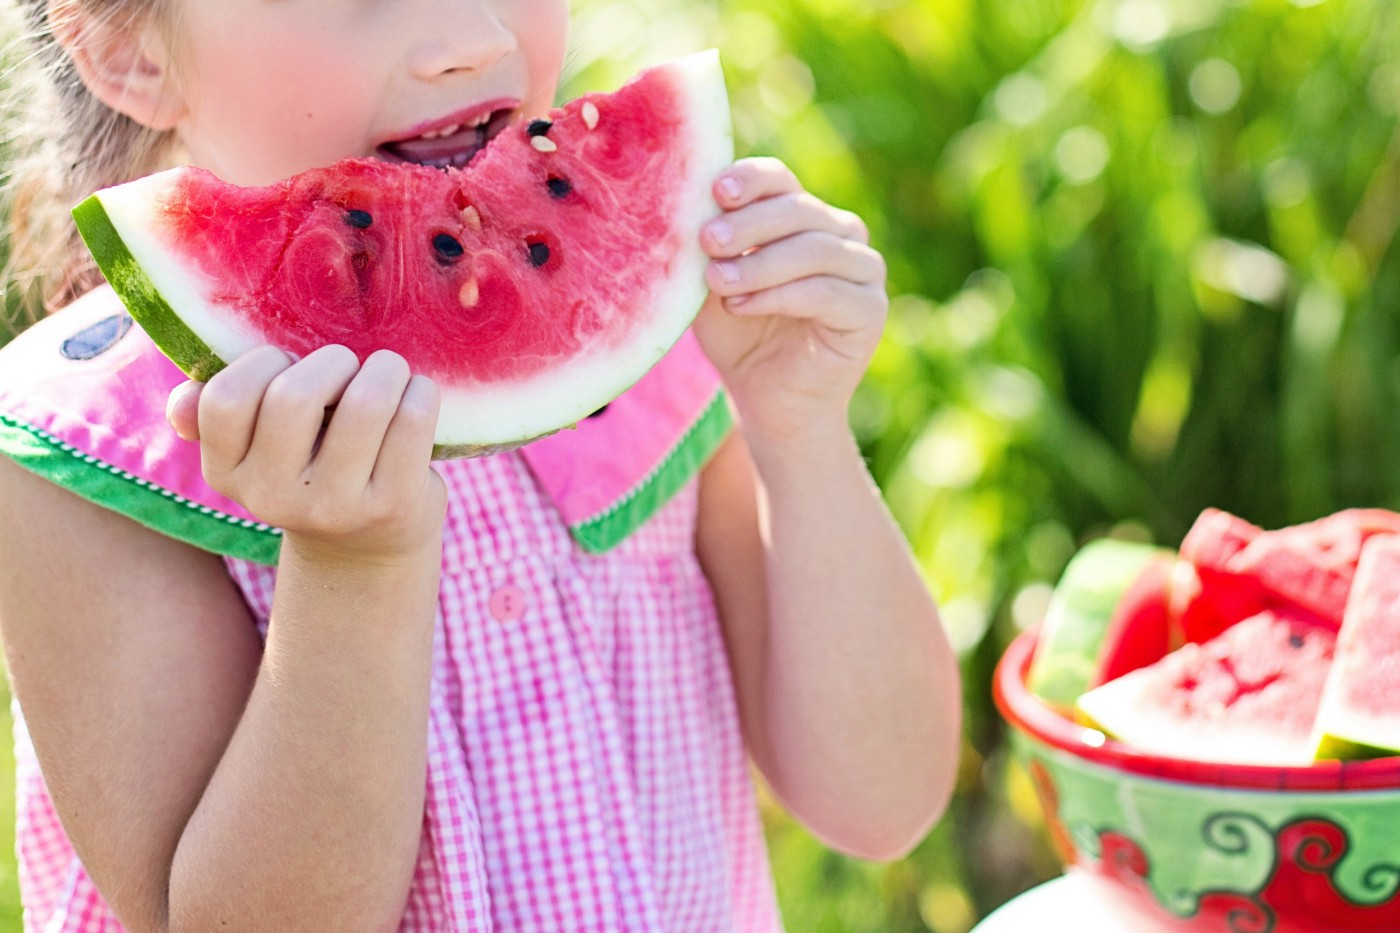 Little girl in a pink dress eating watermelon.